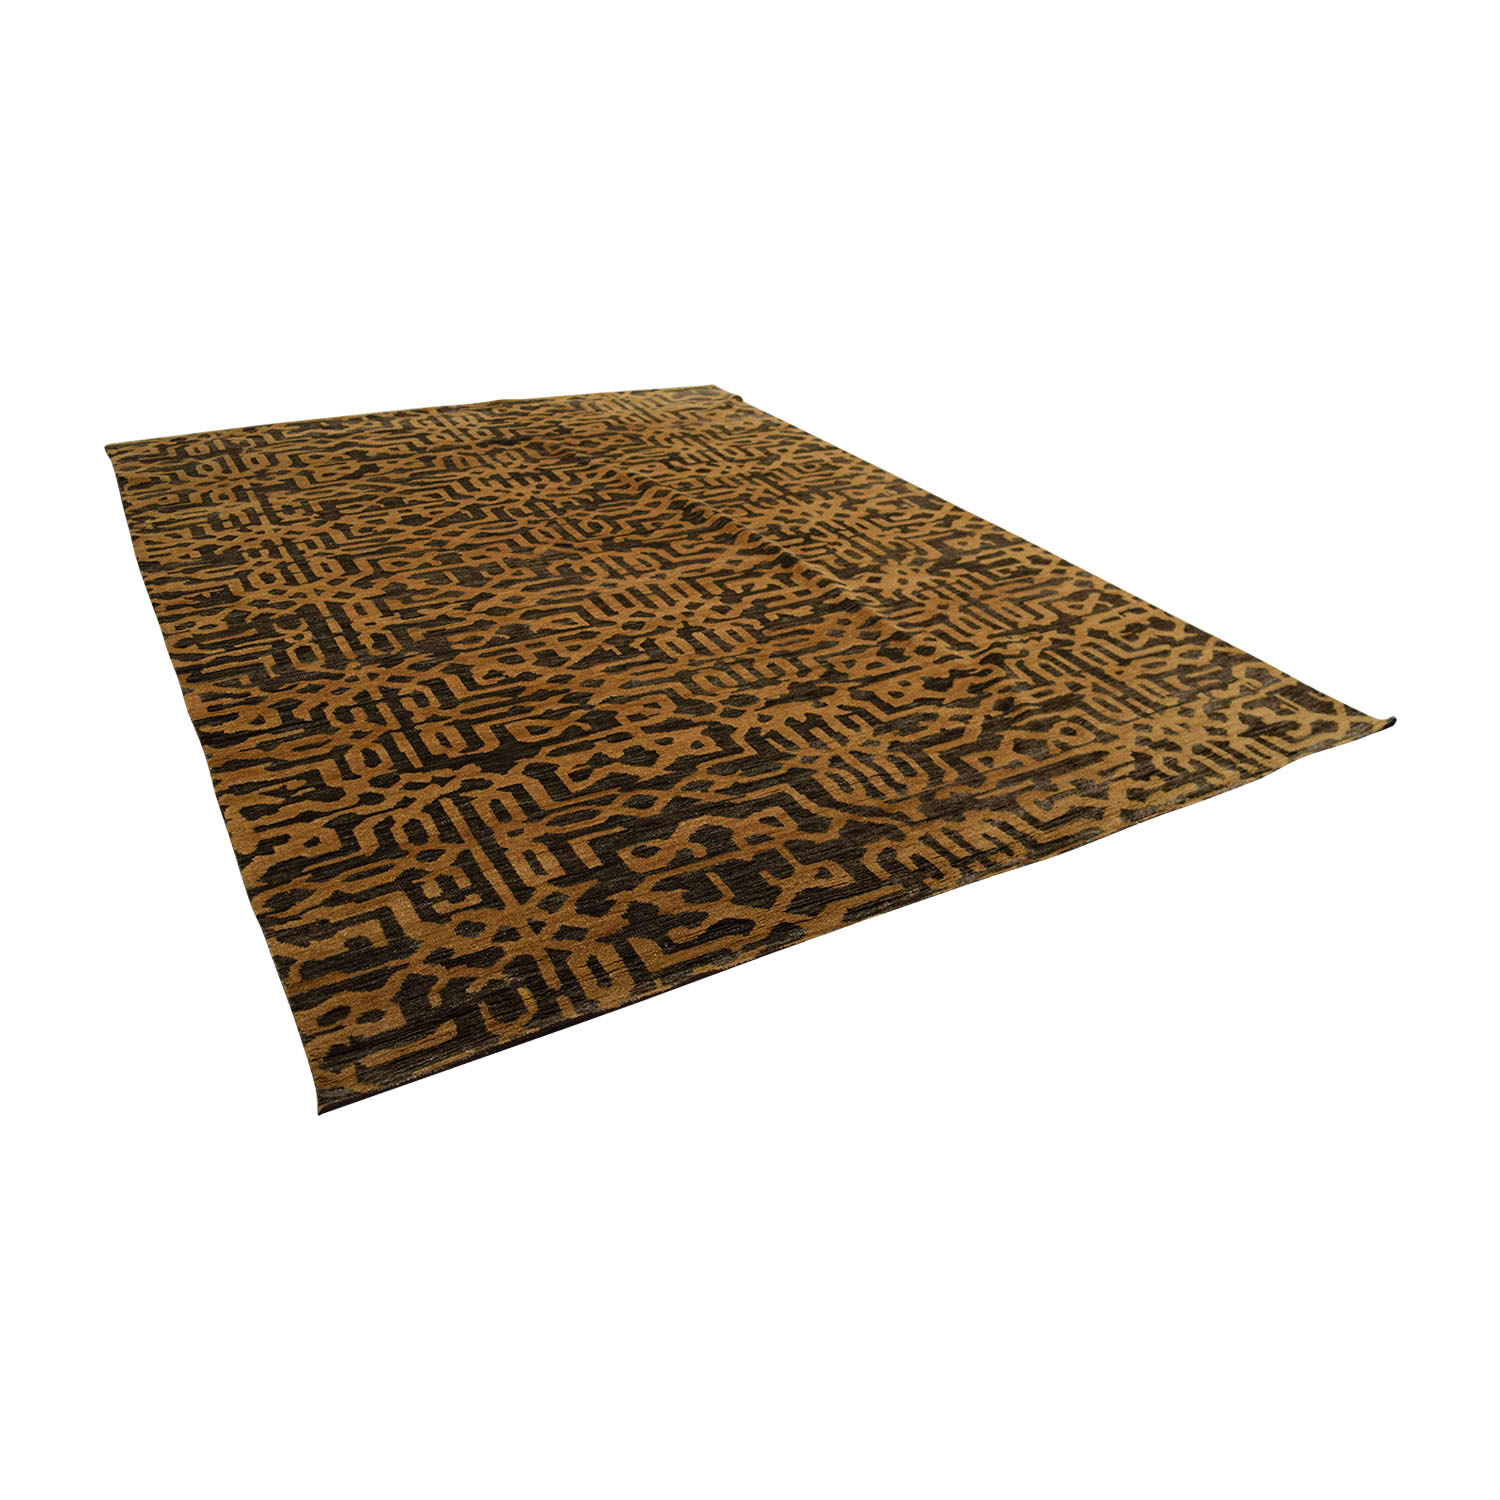 Obeetee Obeetee Hand Knotted Brown and Tan Wool Rug nj